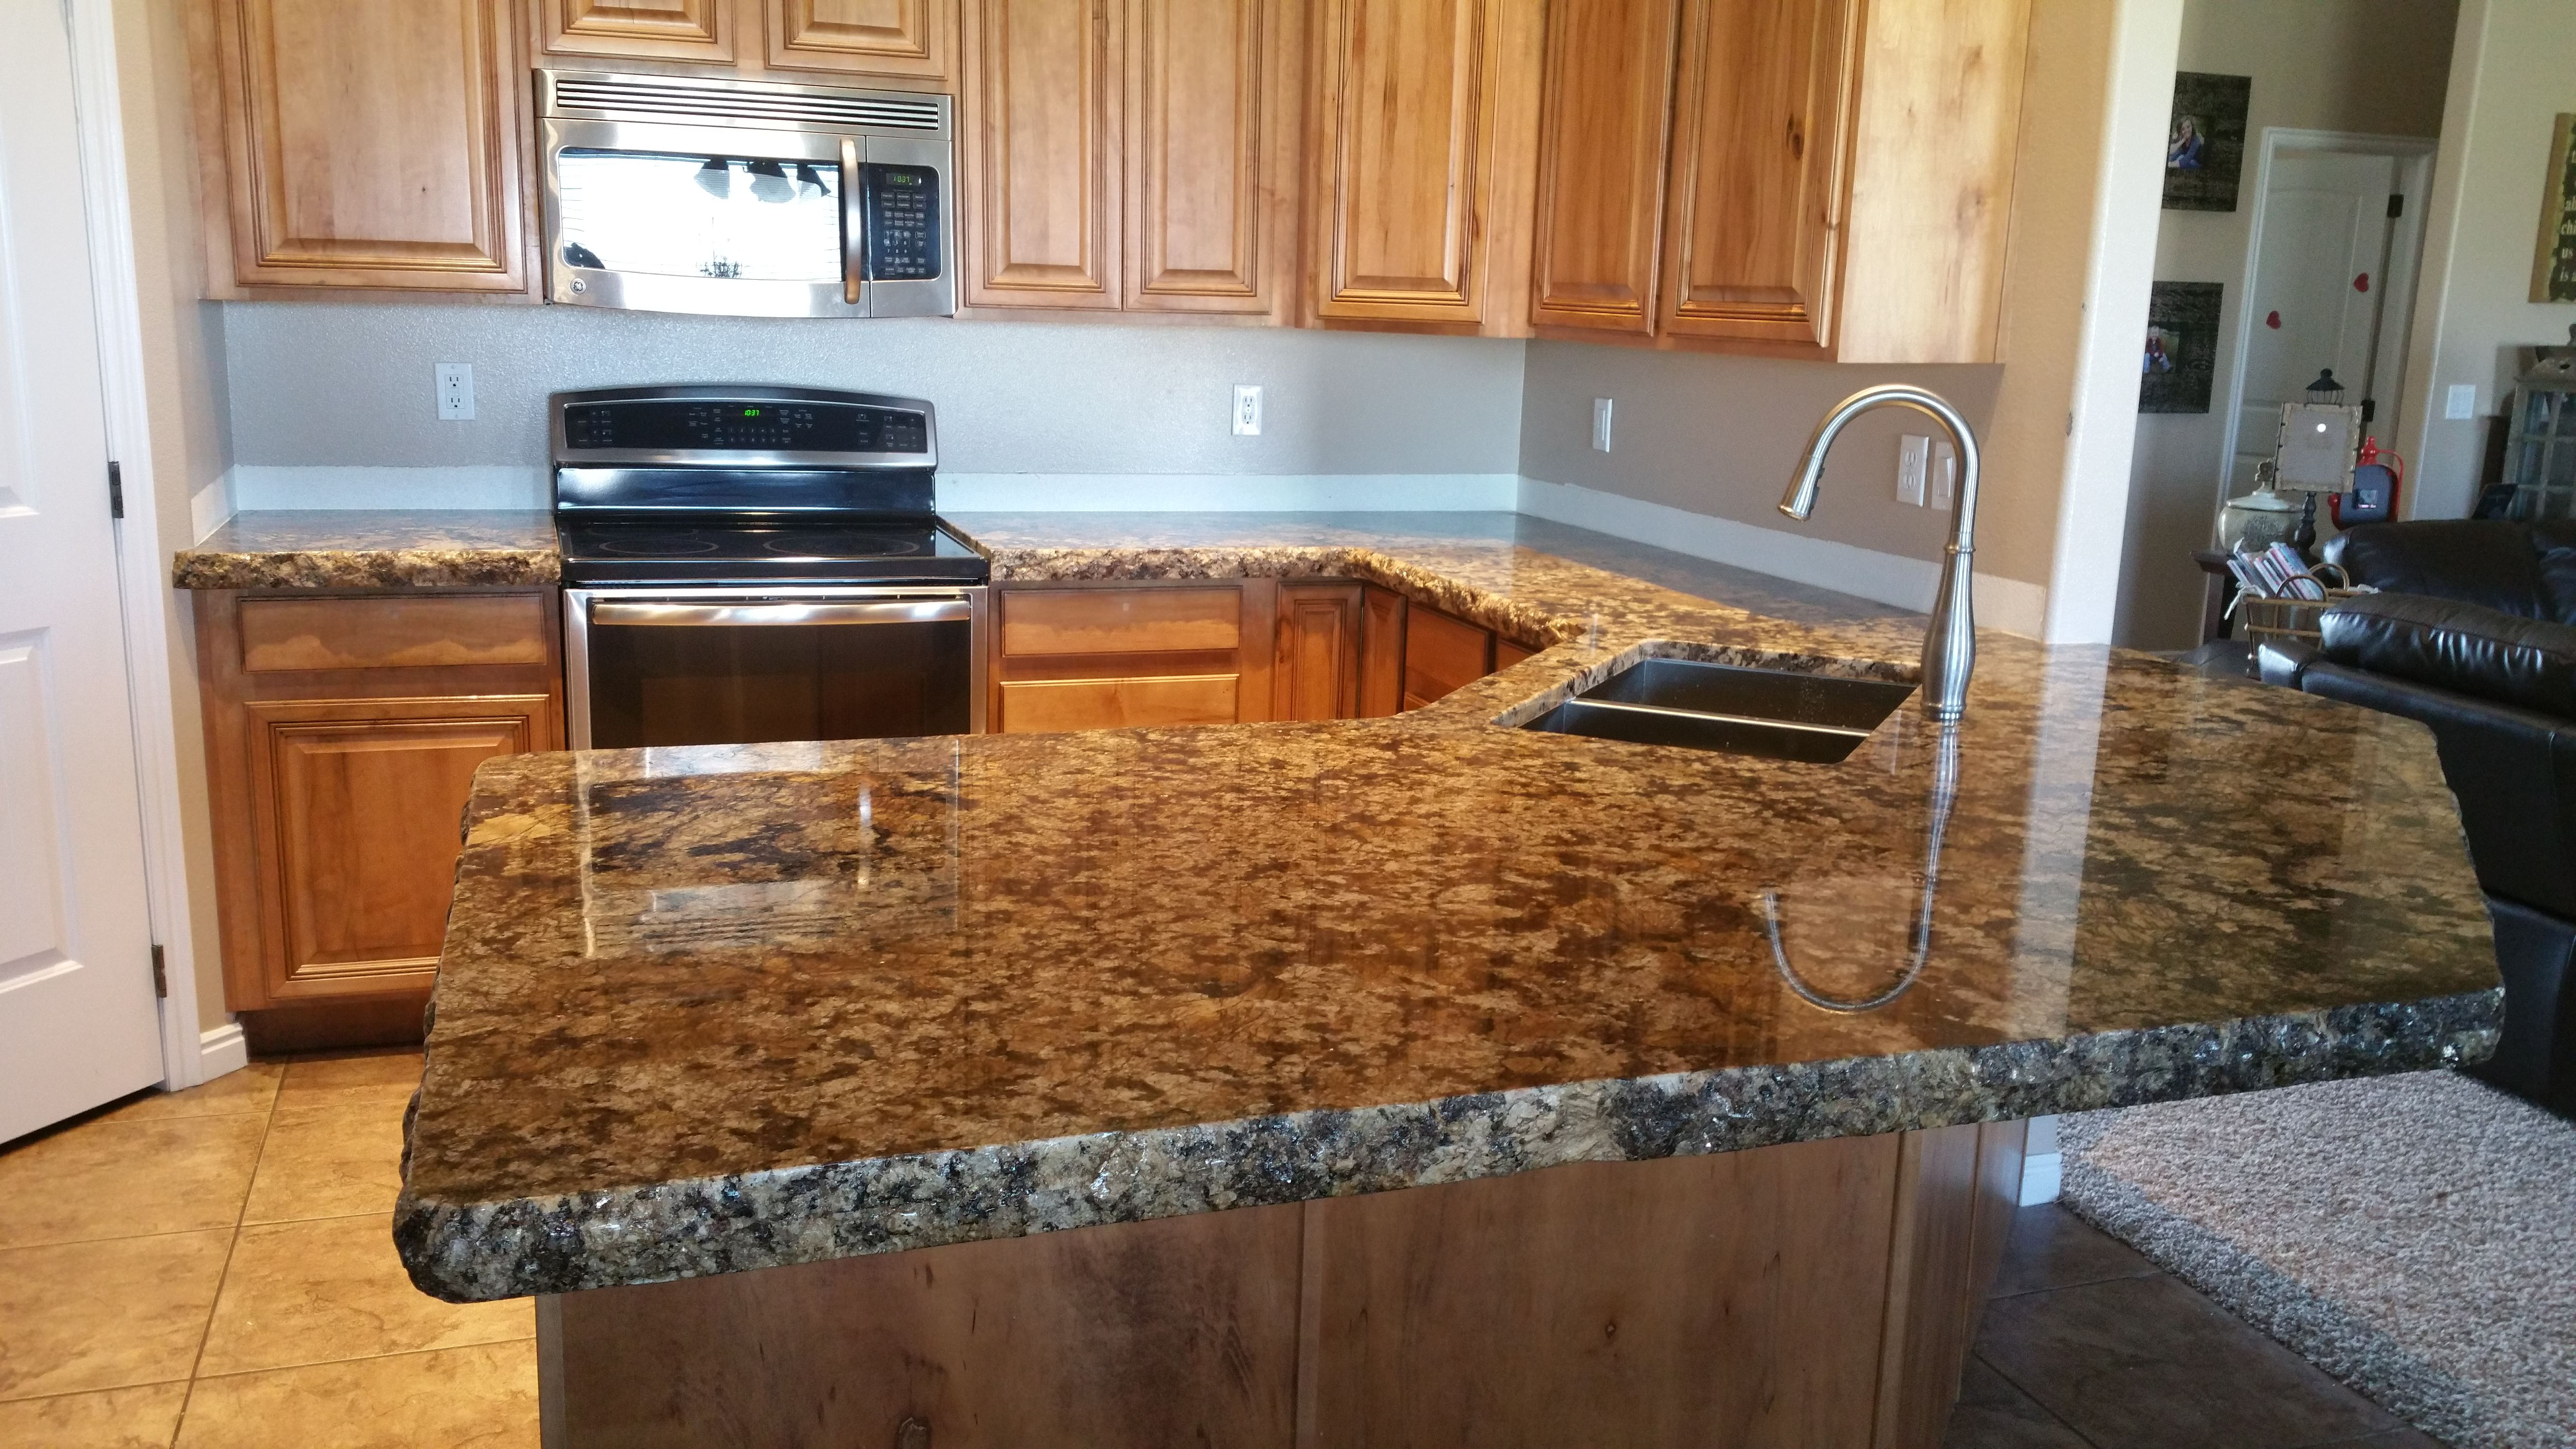 coliseum granite with a 6 cm chipped edge and raised panel style